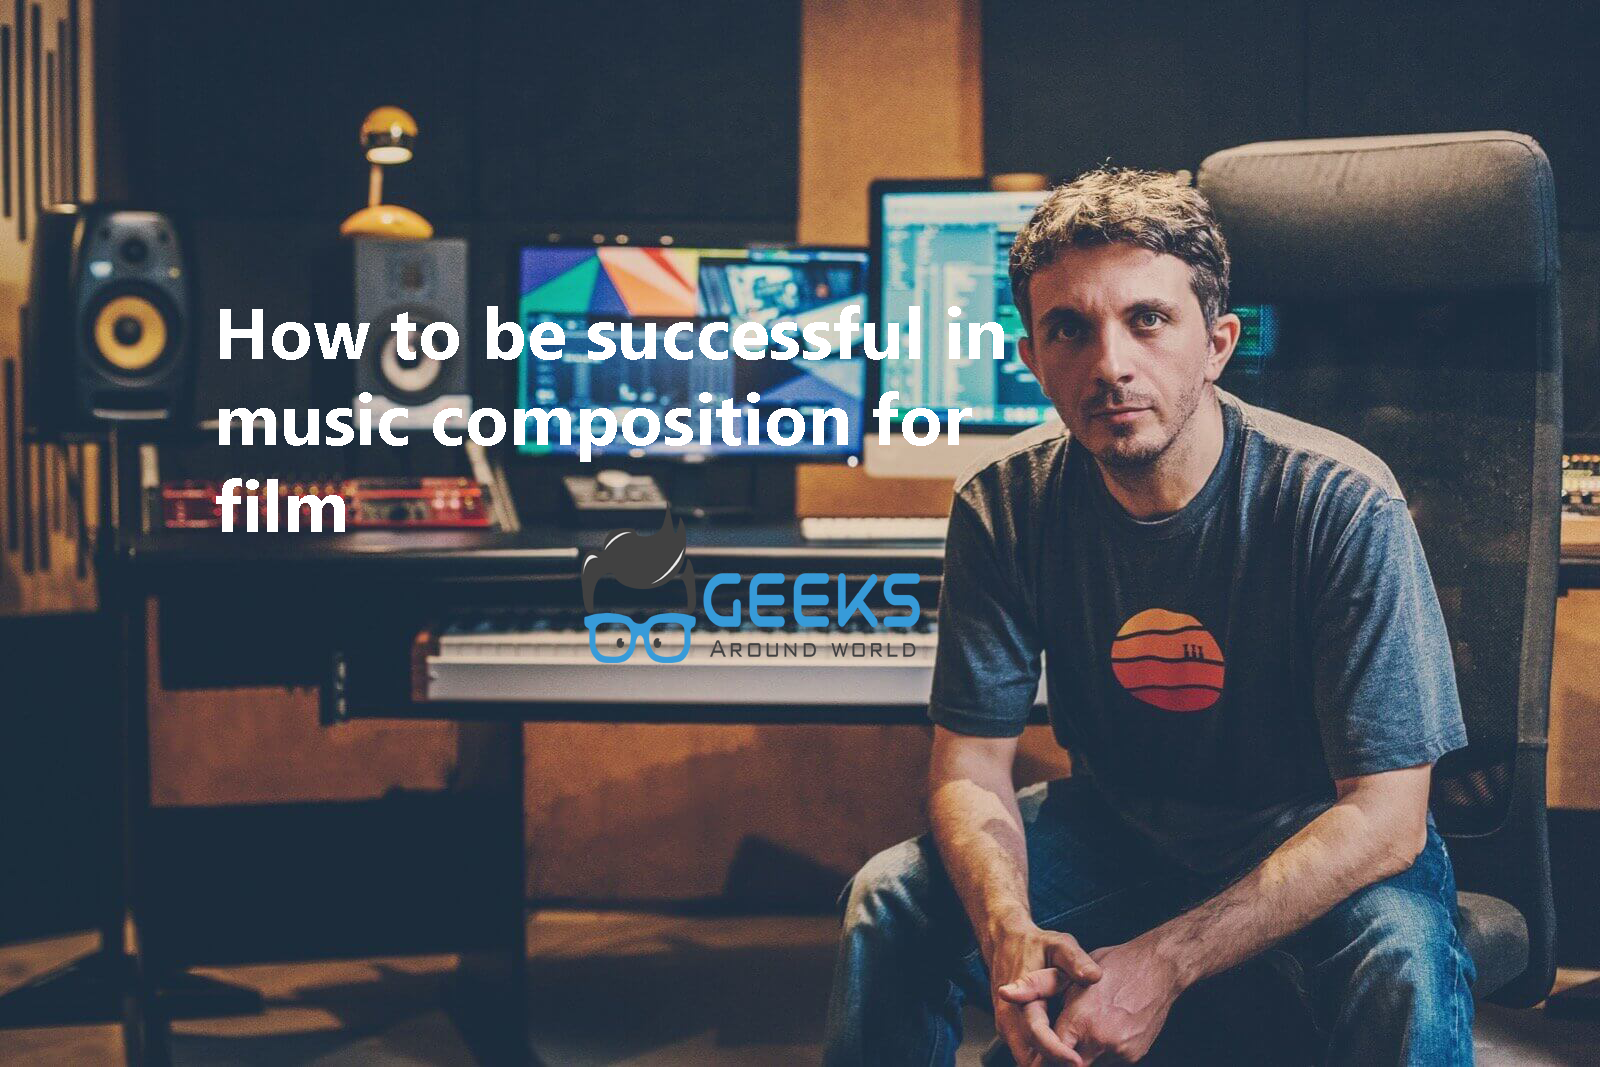 How to be successful in music composition for film